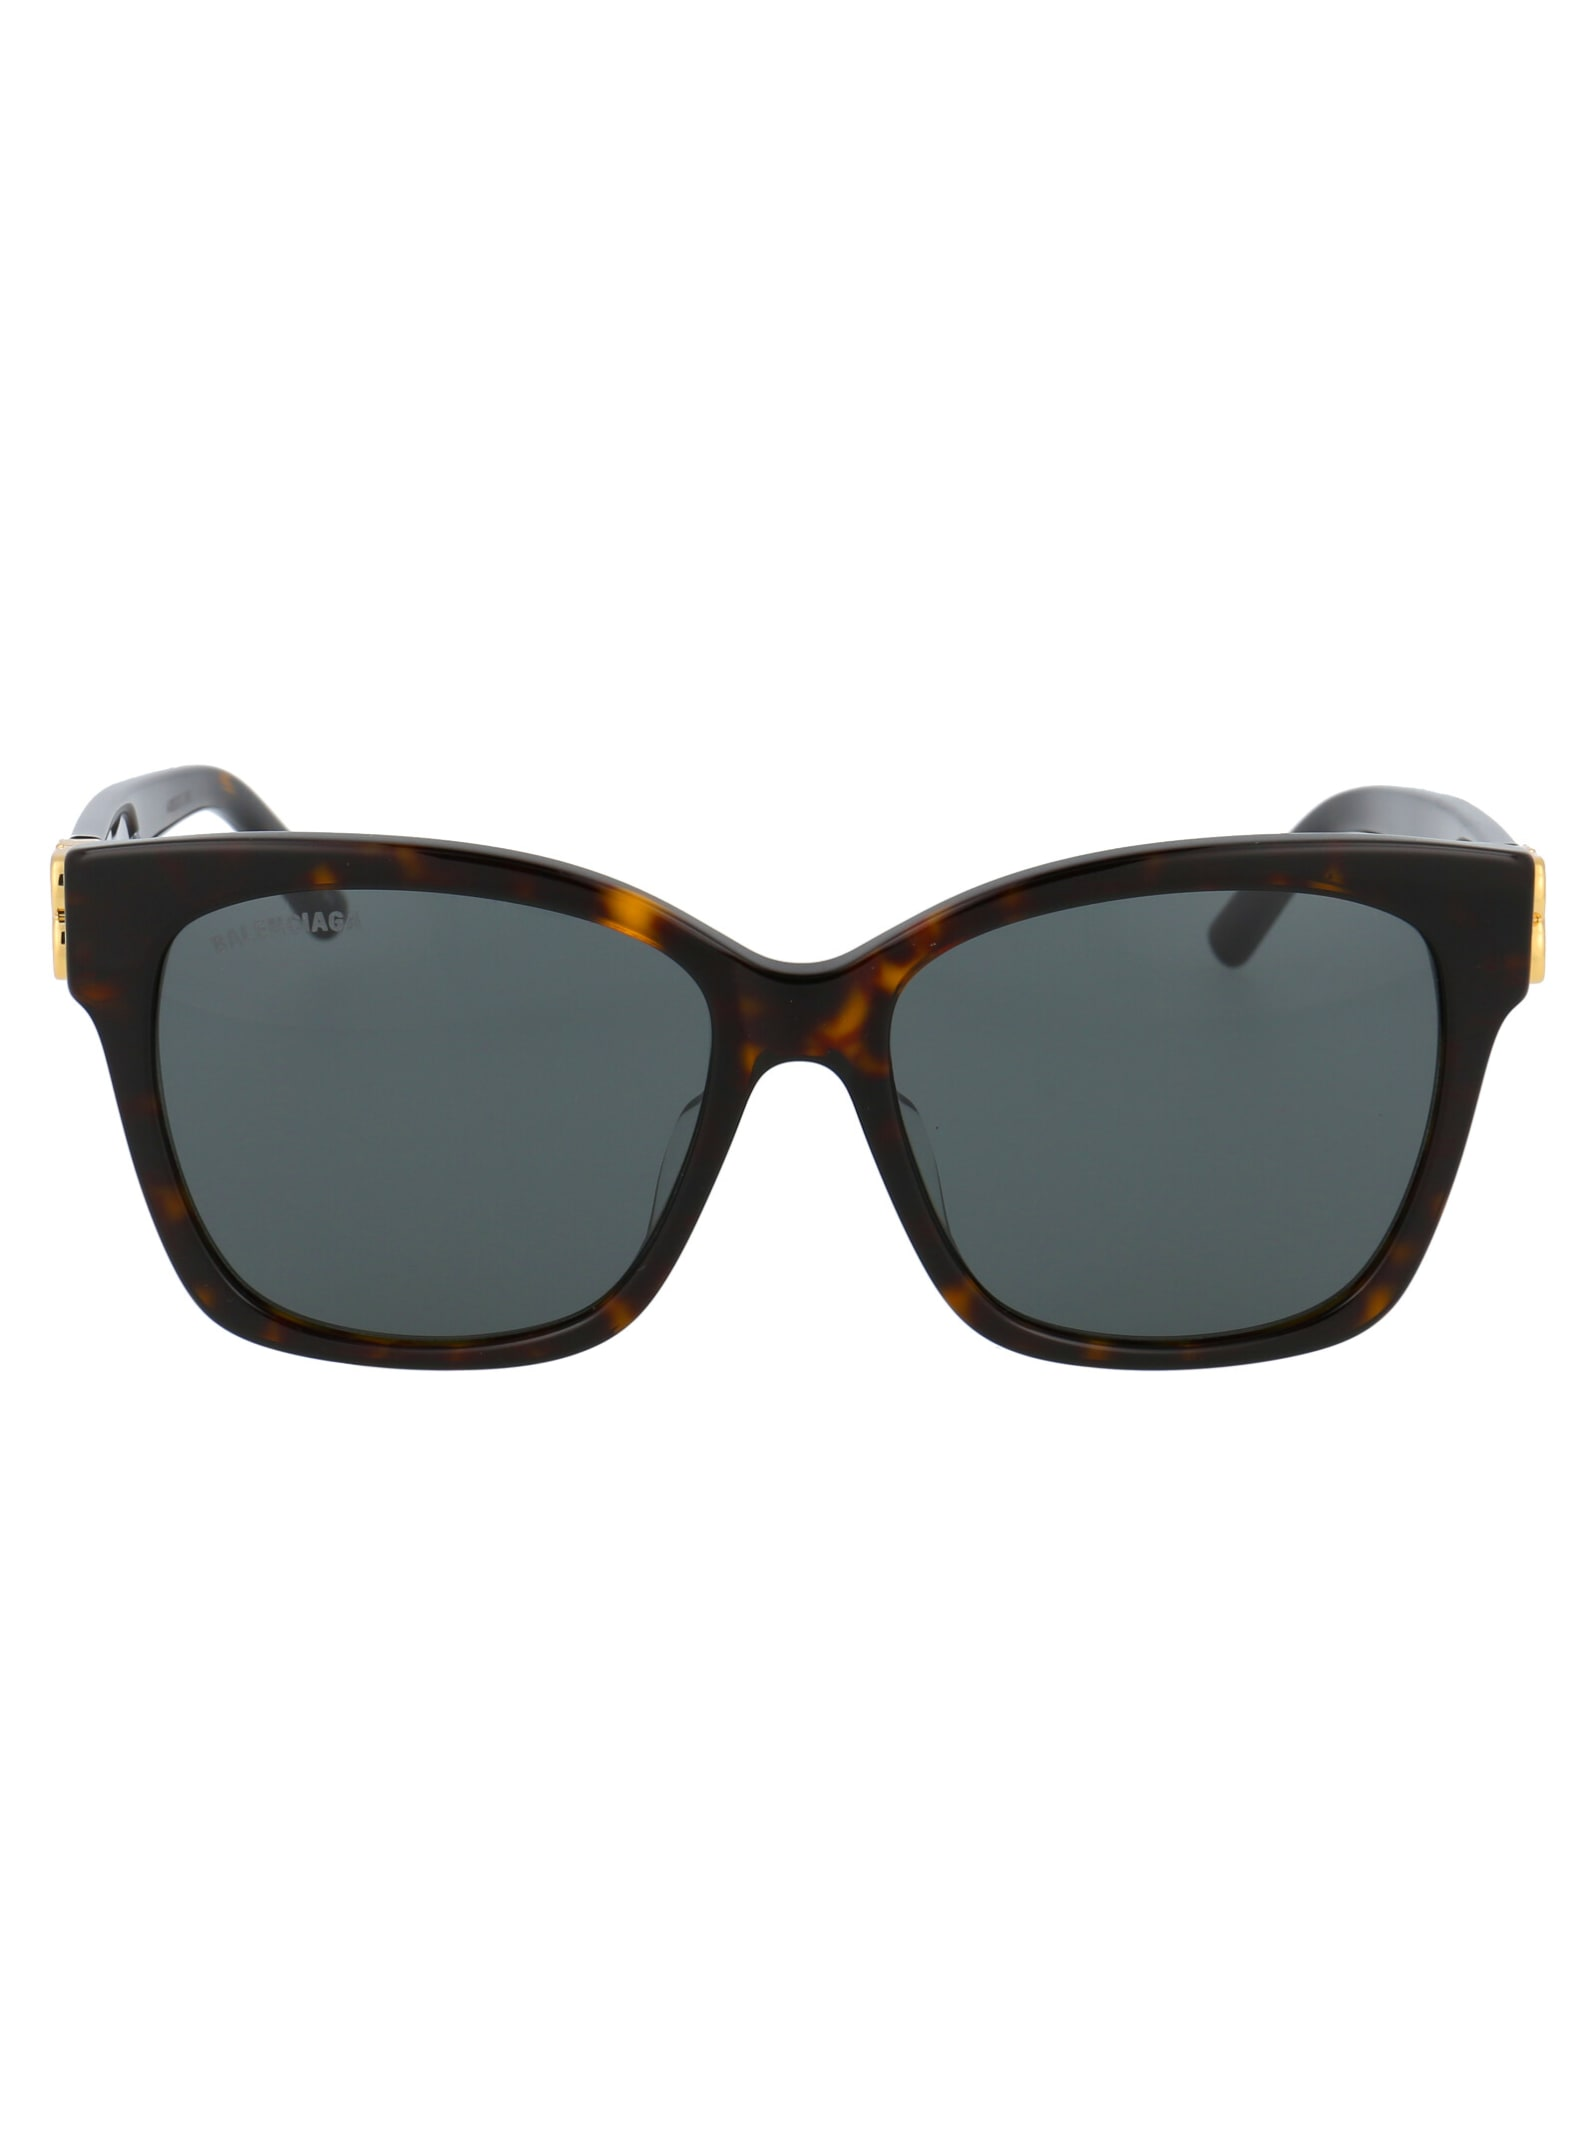 Bb0102sa Sunglasses